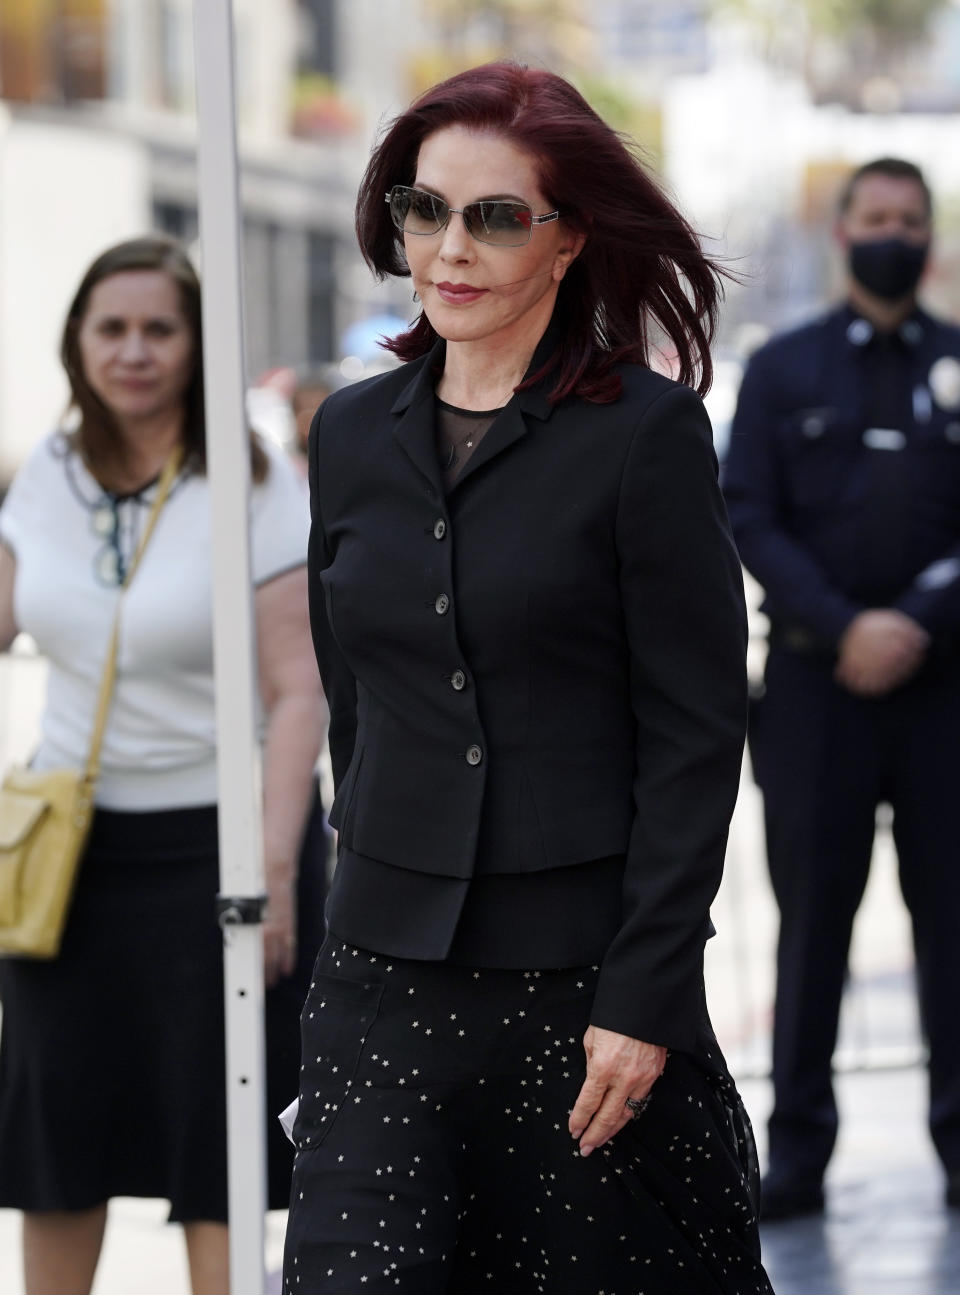 Priscilla Presley appears at a ceremony honoring television producer Nigel Lythgoe with a star on the Hollywood Walk of Fame, Friday, July 9, 2021, in Los Angeles. (AP Photo/Chris Pizzello)